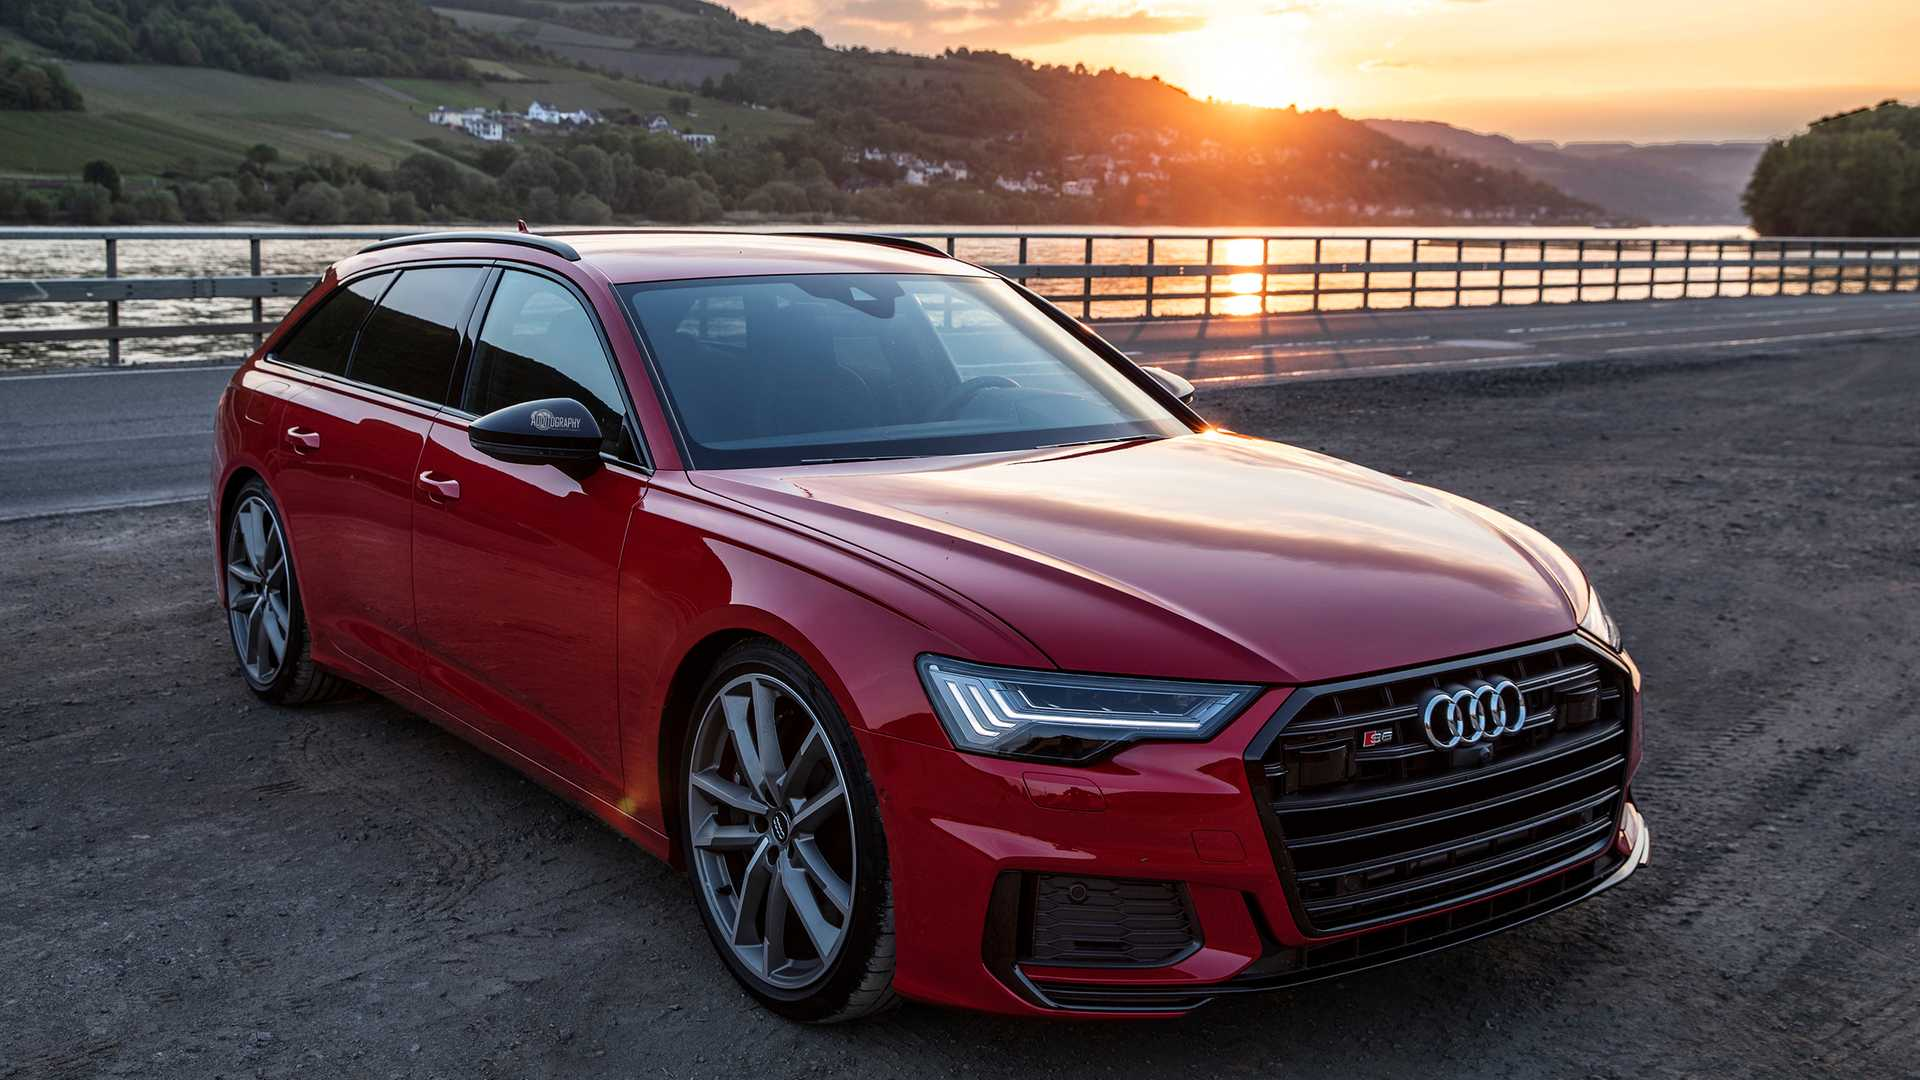 35 Best Review Audi Rs6 Avant 2020 Rumors for Audi Rs6 Avant 2020